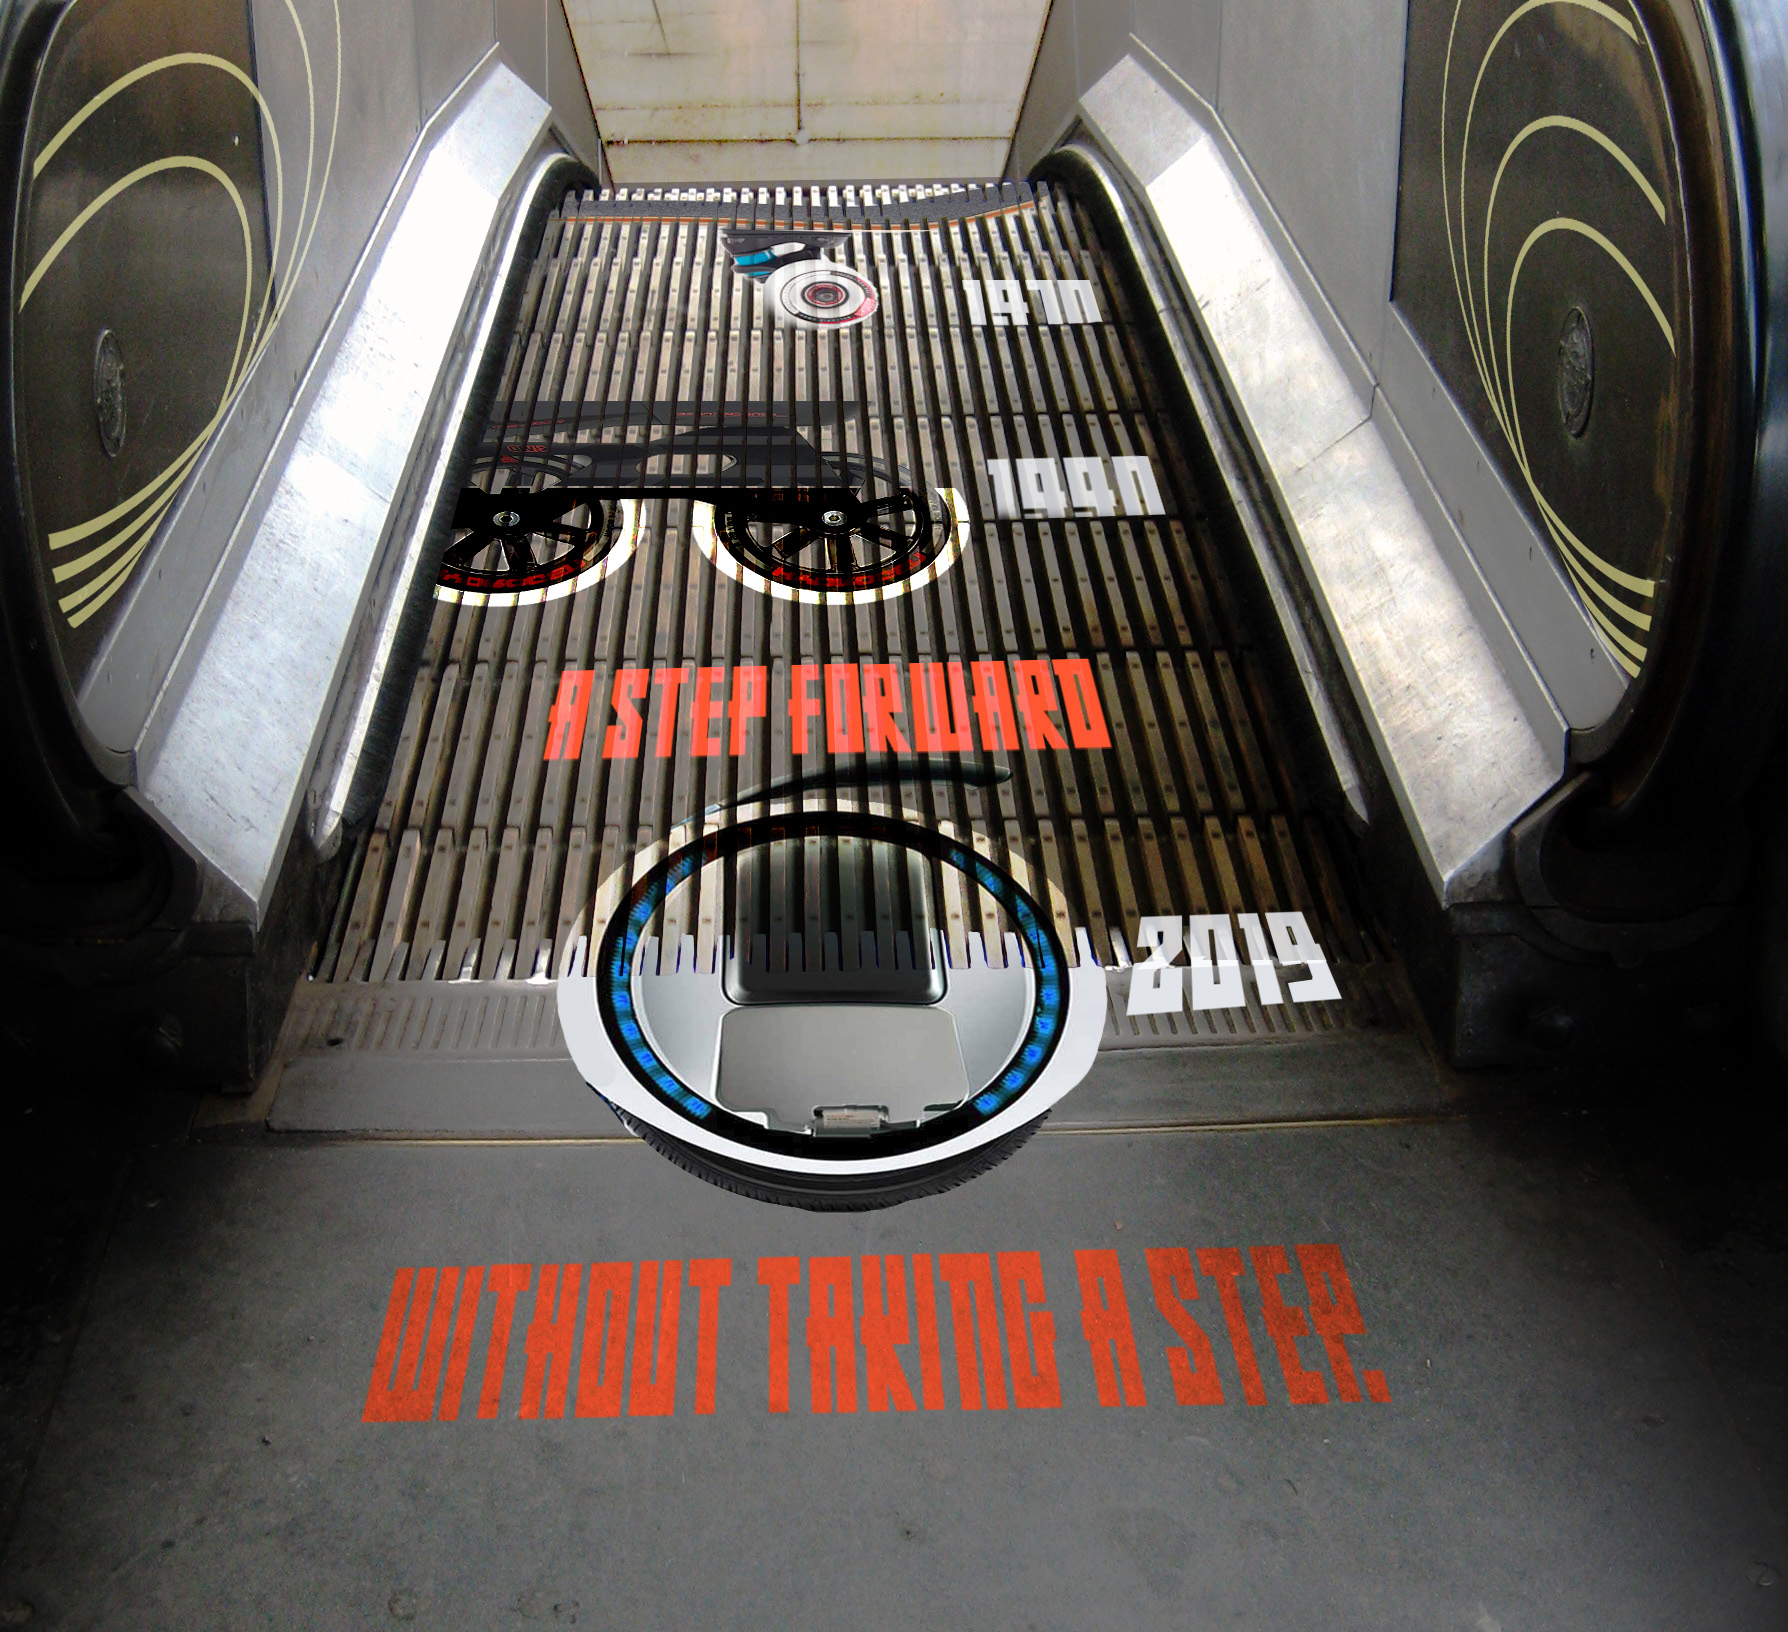 Escalator with print of different wheel articles